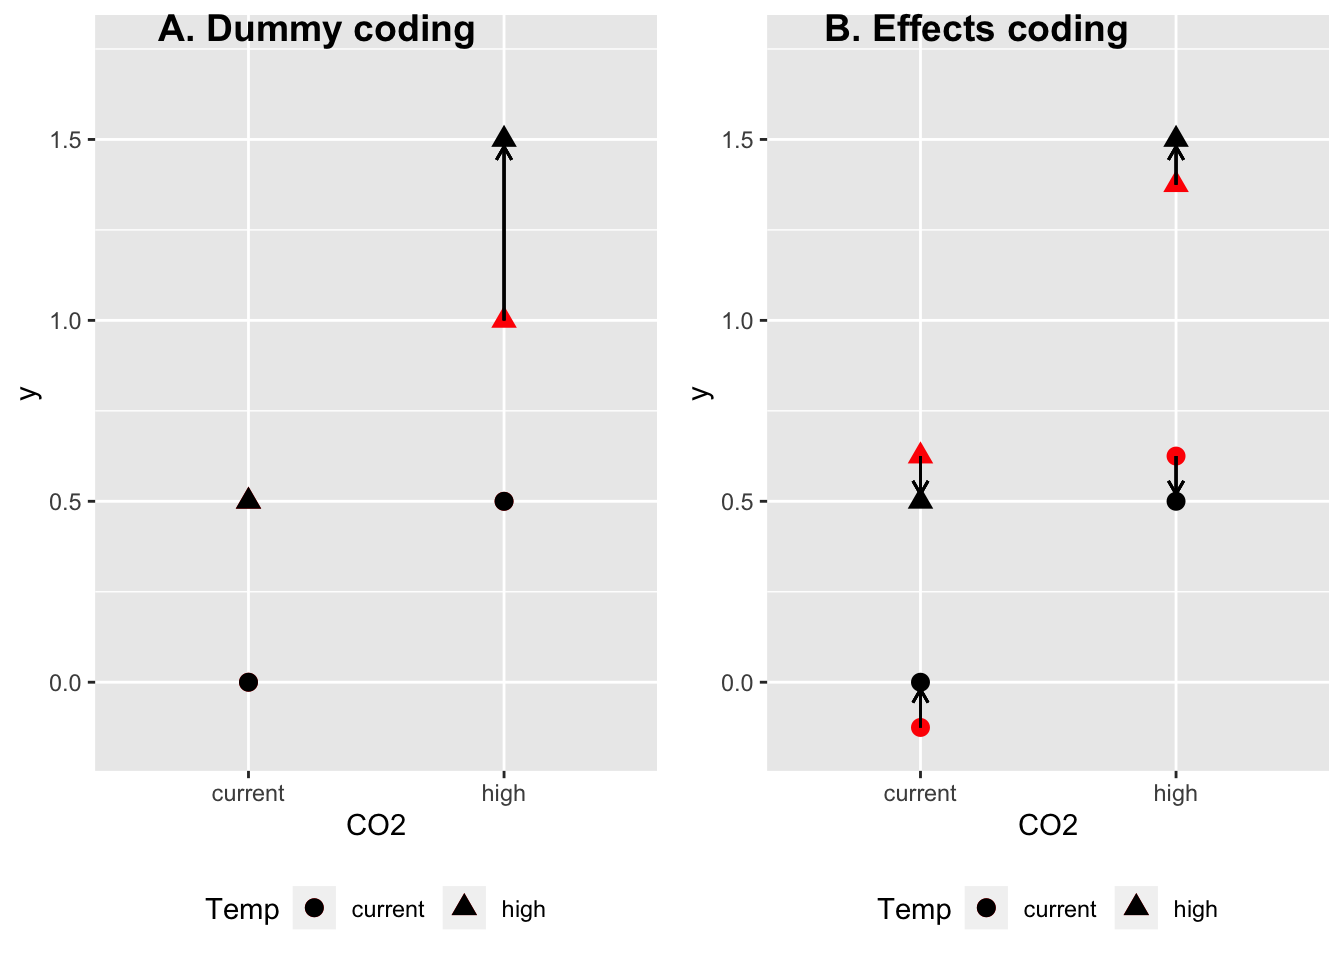 illustration of interaction effect computed using A) dummy coding and B) effects coding. Black dots are the true means. Red dots are the expected means given only additive effects. The interaction effect is 'what is left' to get from the expectation using only additive effects to the true mean. With a dummy coded model, there is only one interaction effect for the 2 x 2 design. With an effects coded model, there are four interaction effects -- all have the same magnitude but the sign varies by group.